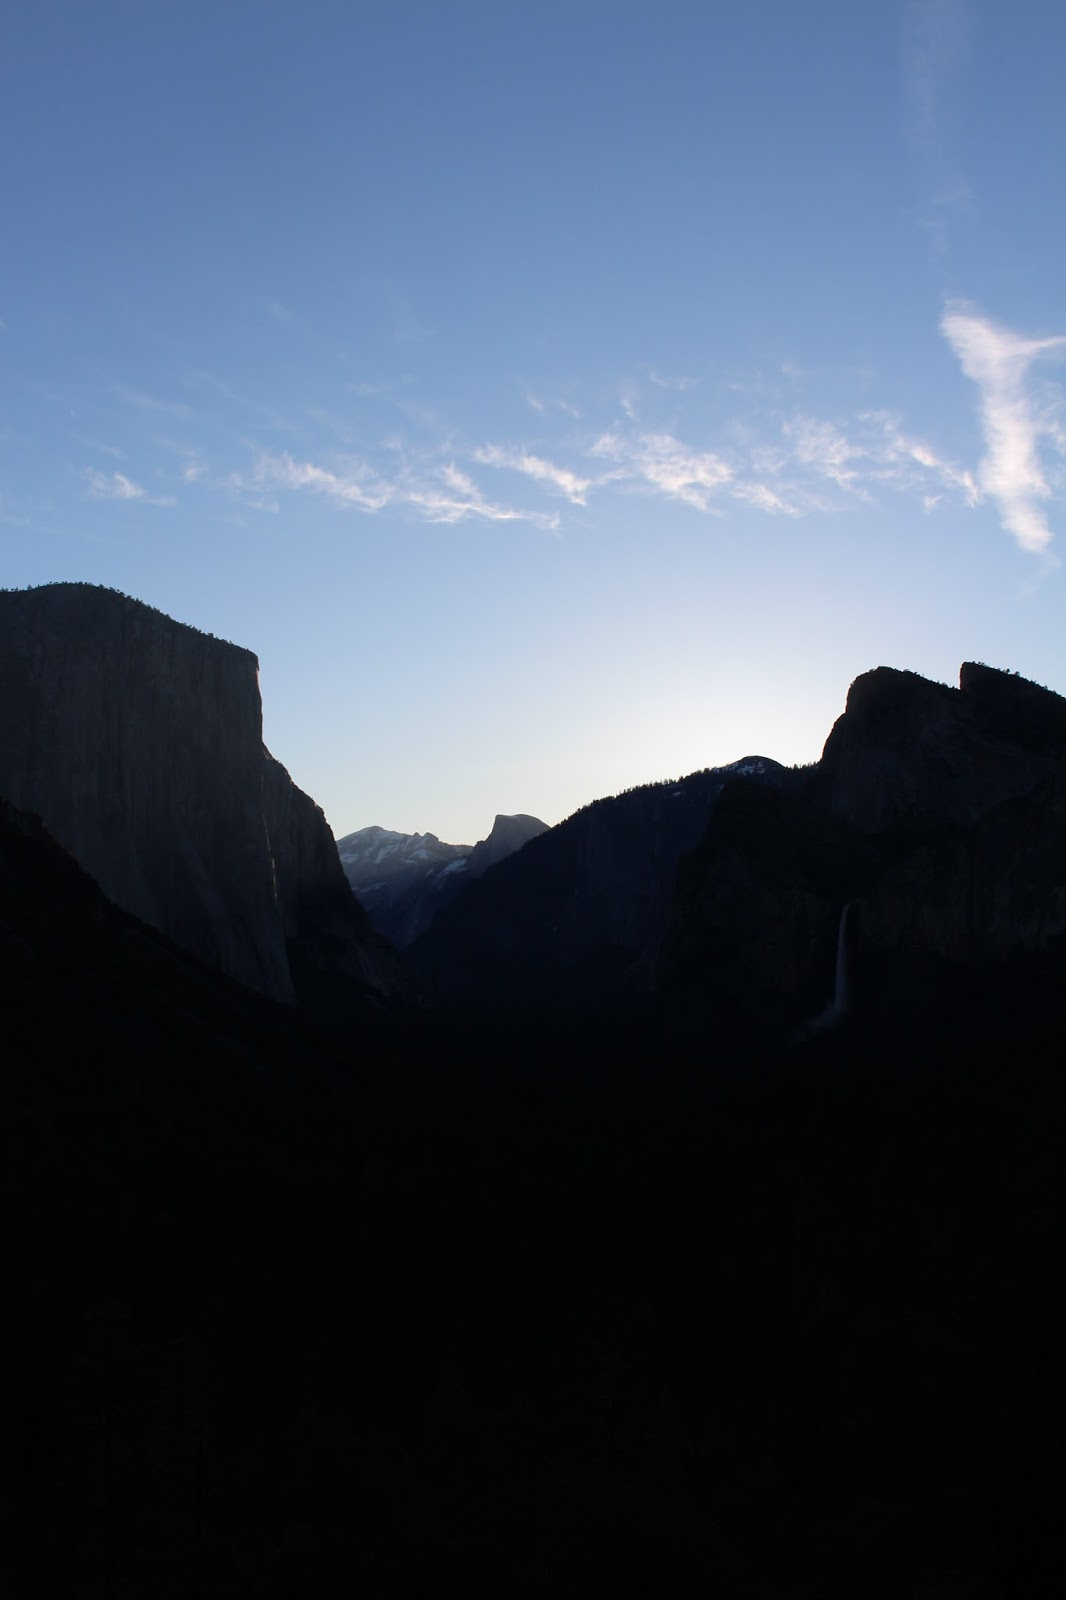 Visiting Yosemite: Expert Howto Tips